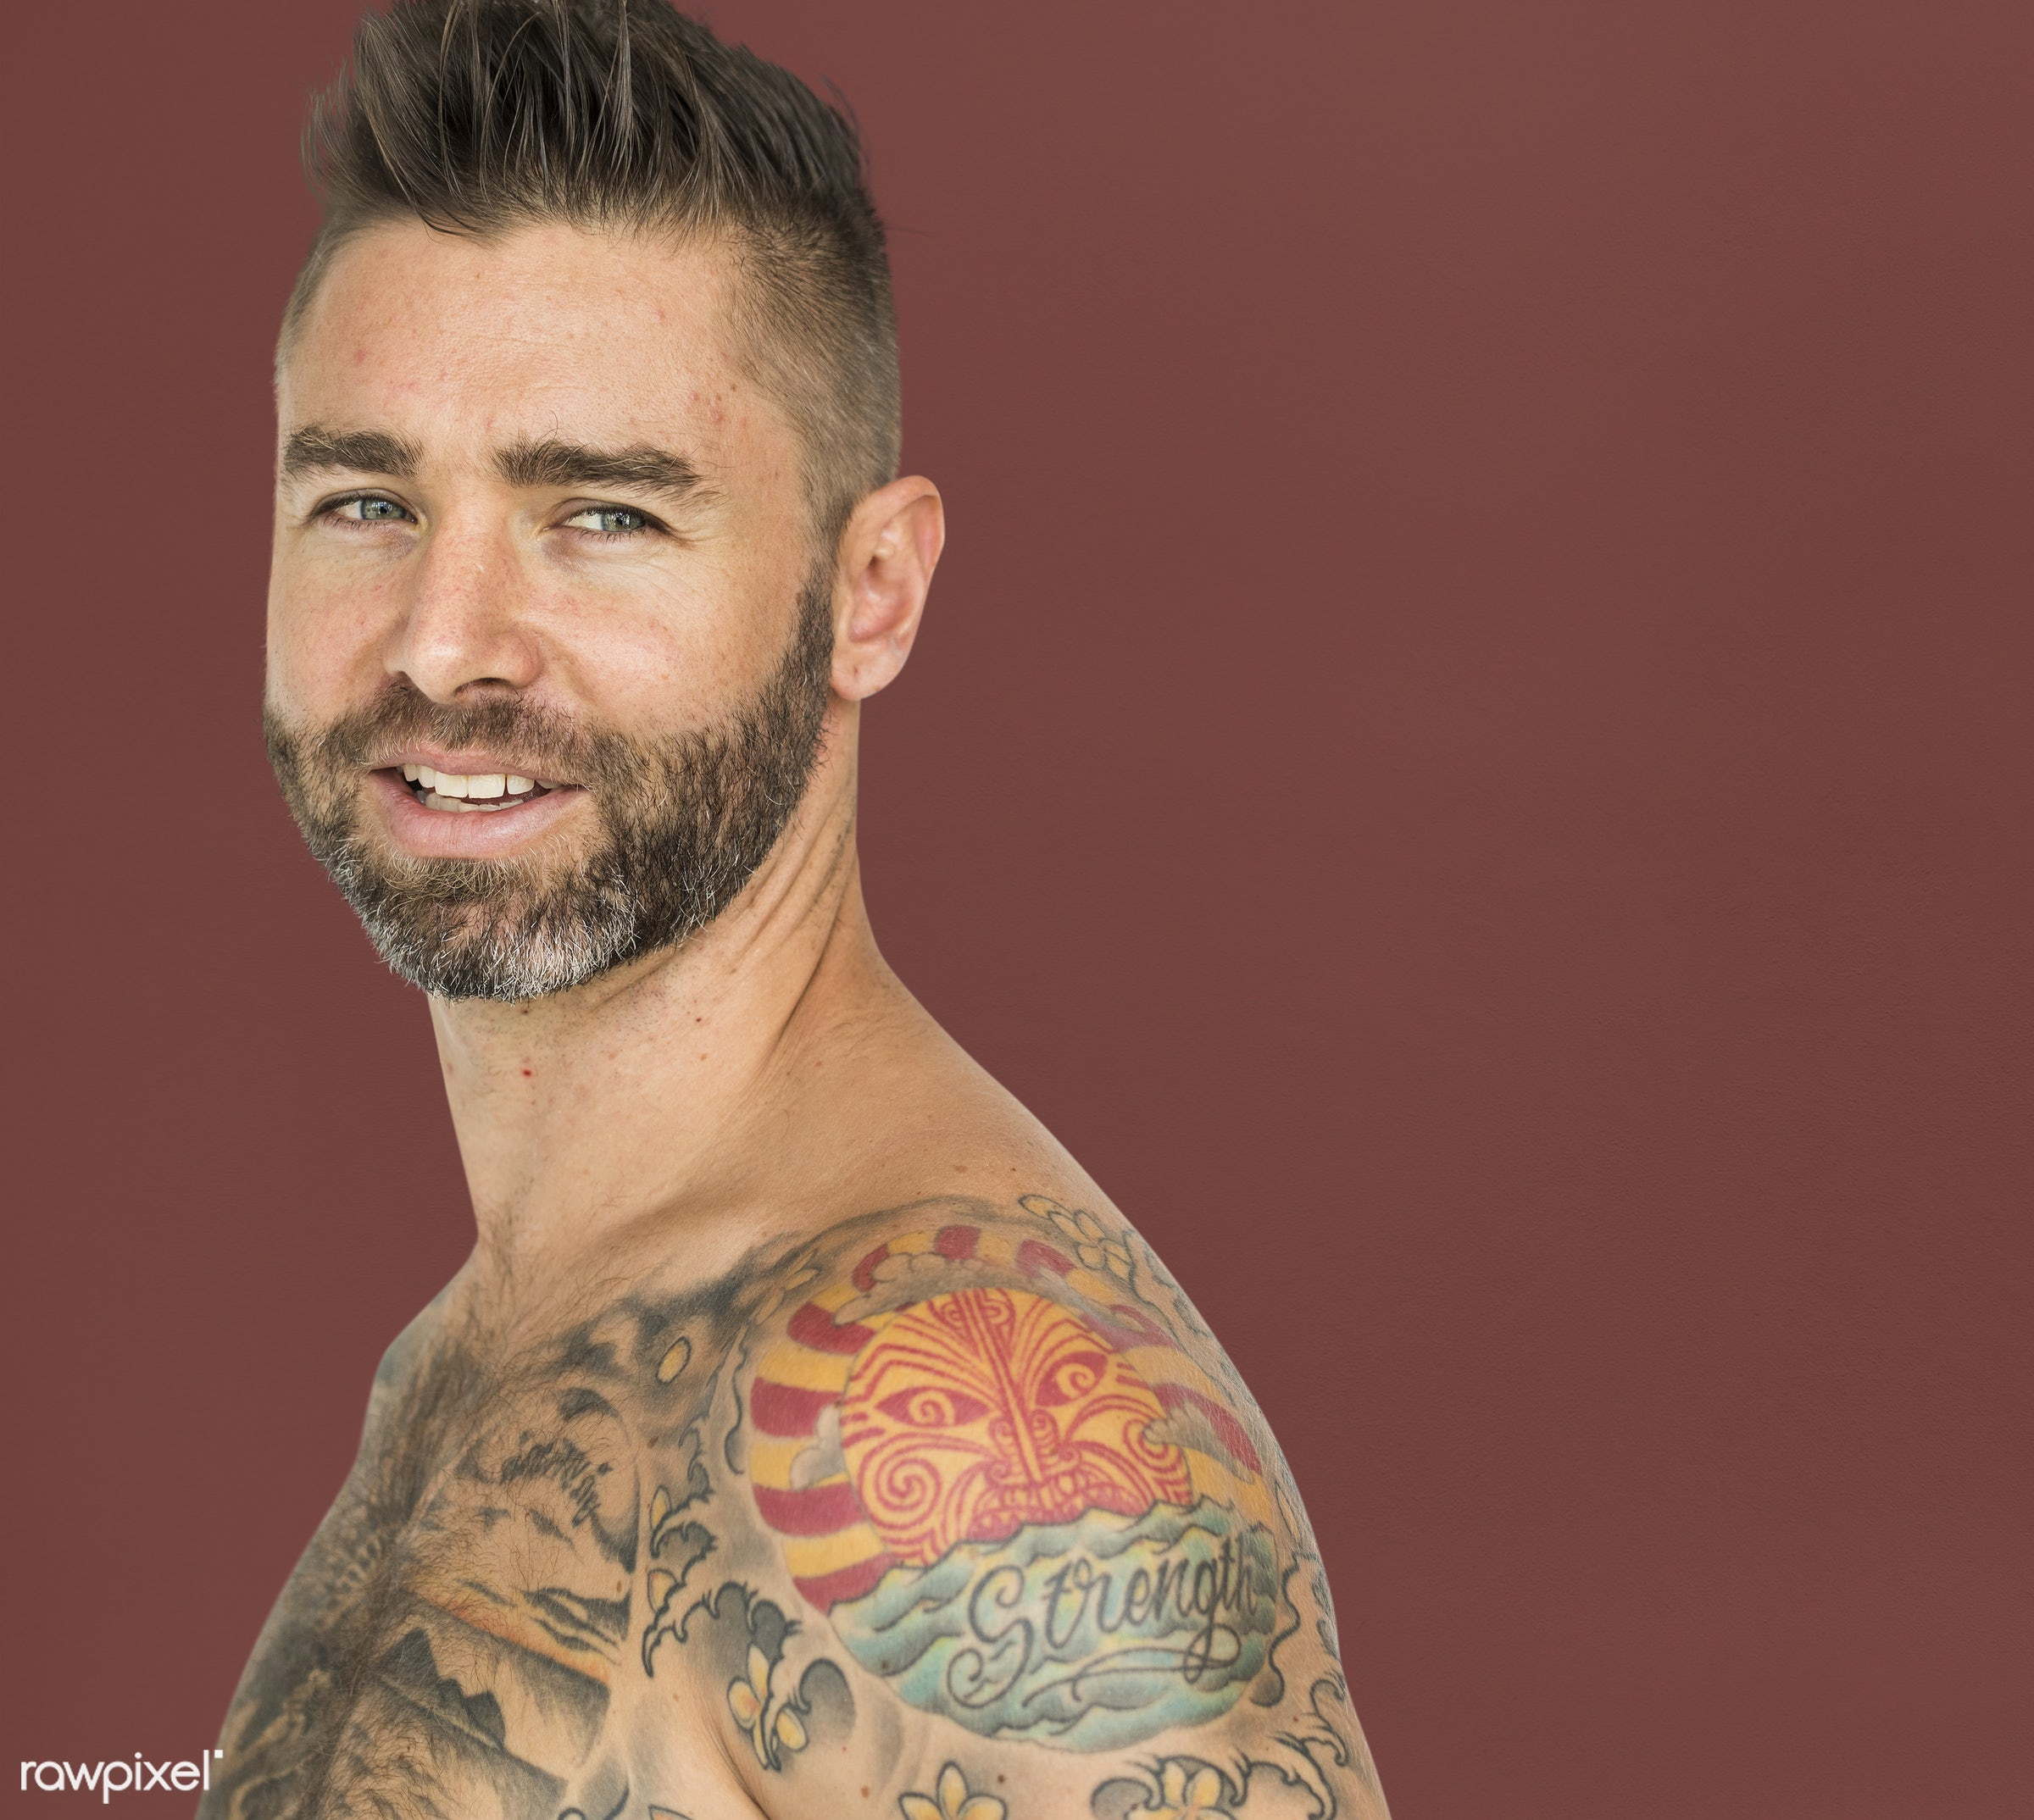 studio, expression, person, show, people, caucasian, solo, lifestyle, smile, tattoo, isolated, art, happiness, portrait,...